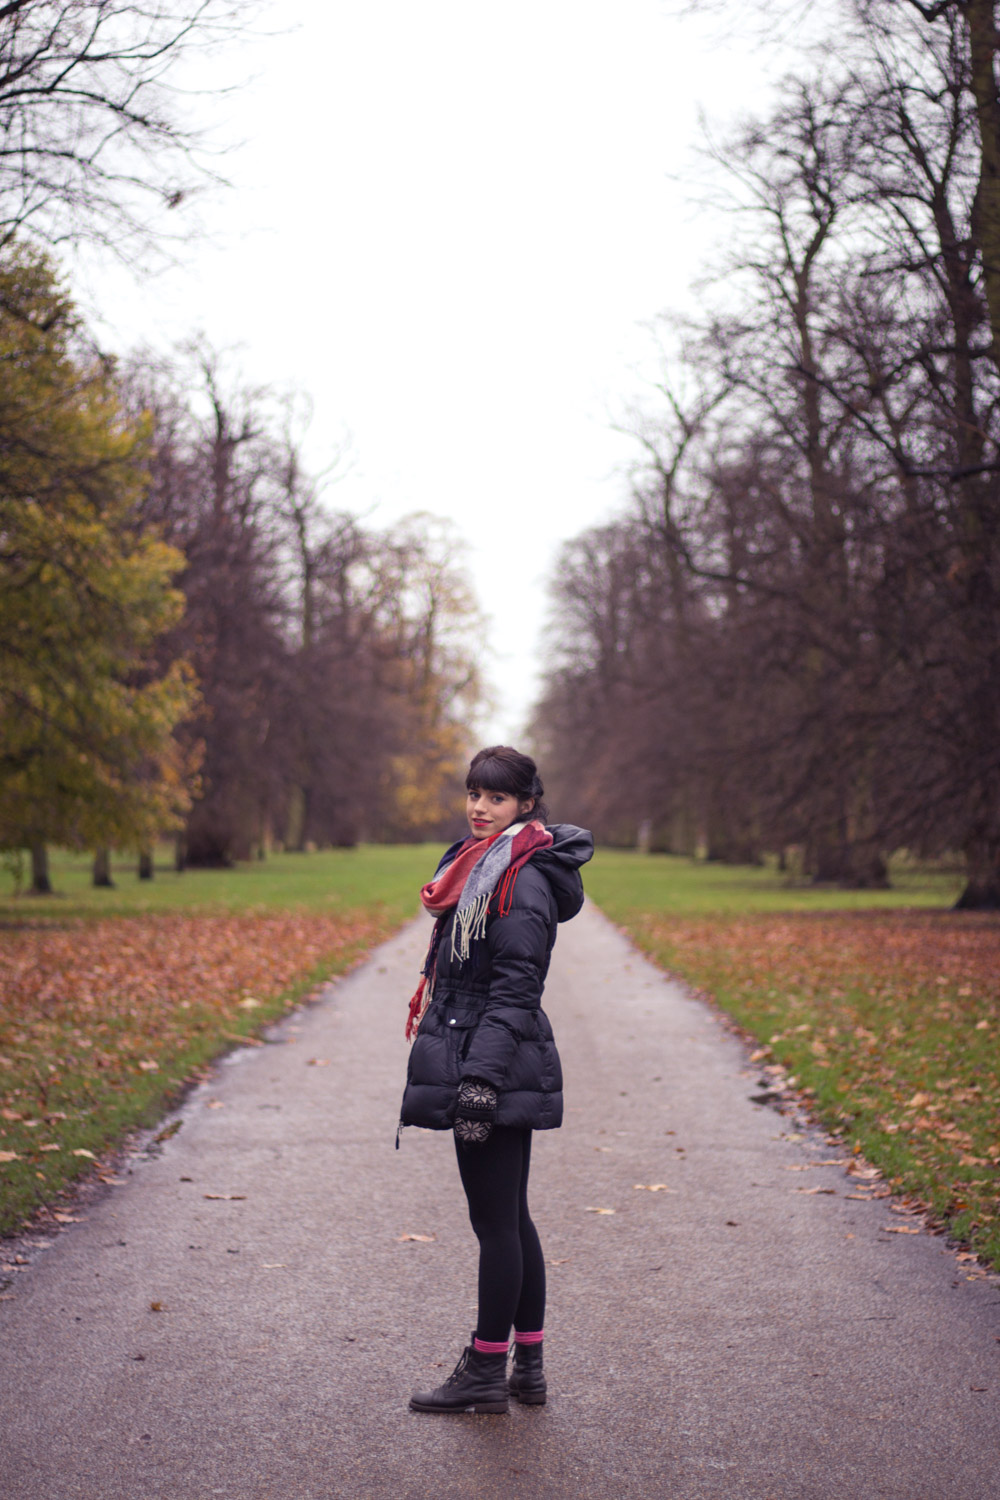 Smiling in Hyde Park London for Christmas